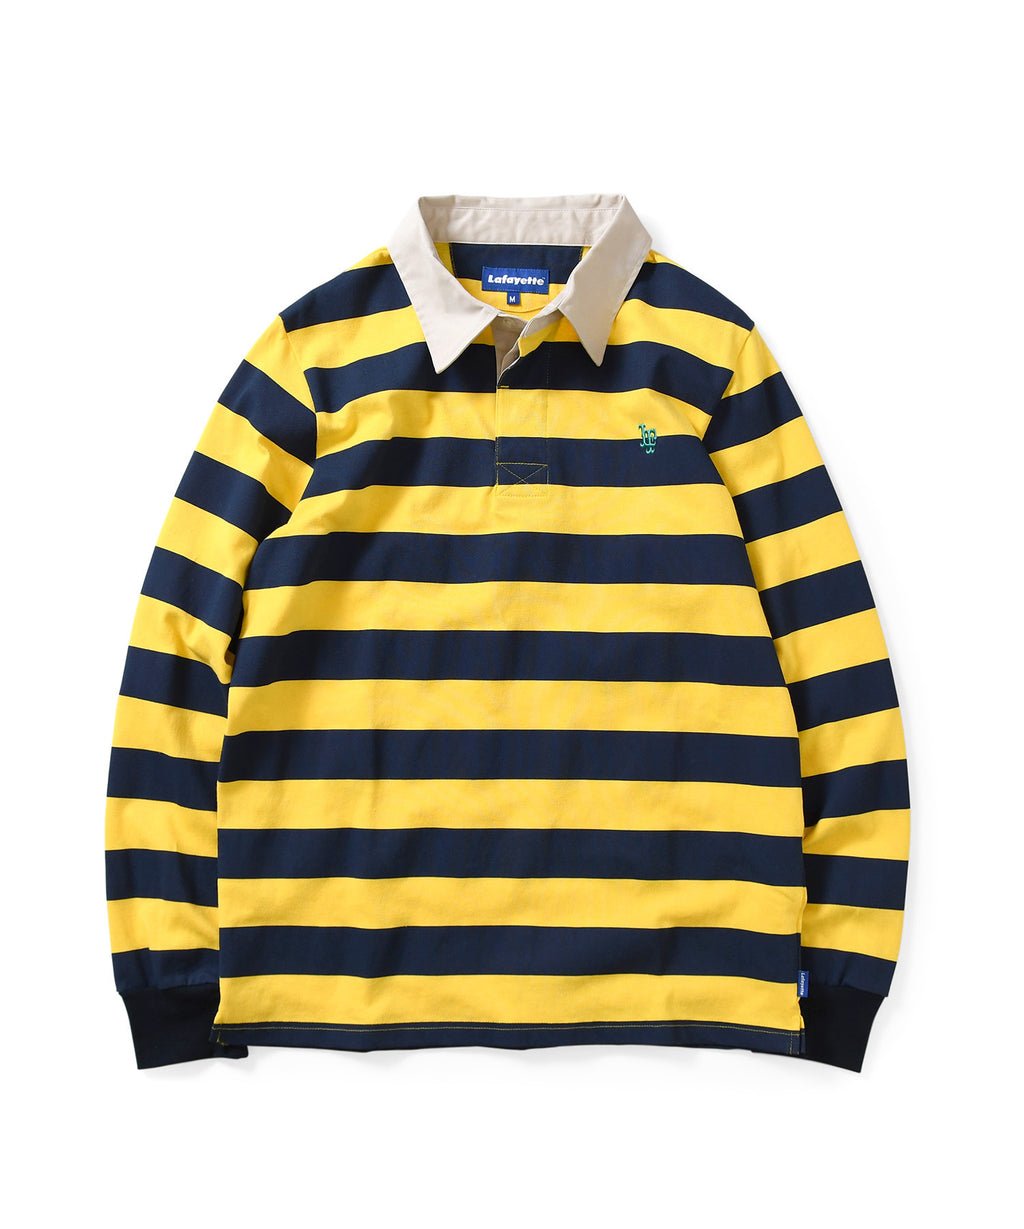 Lafayette LF LOGO STRIPED RUGBY SHIRT LS200301 YELLOW